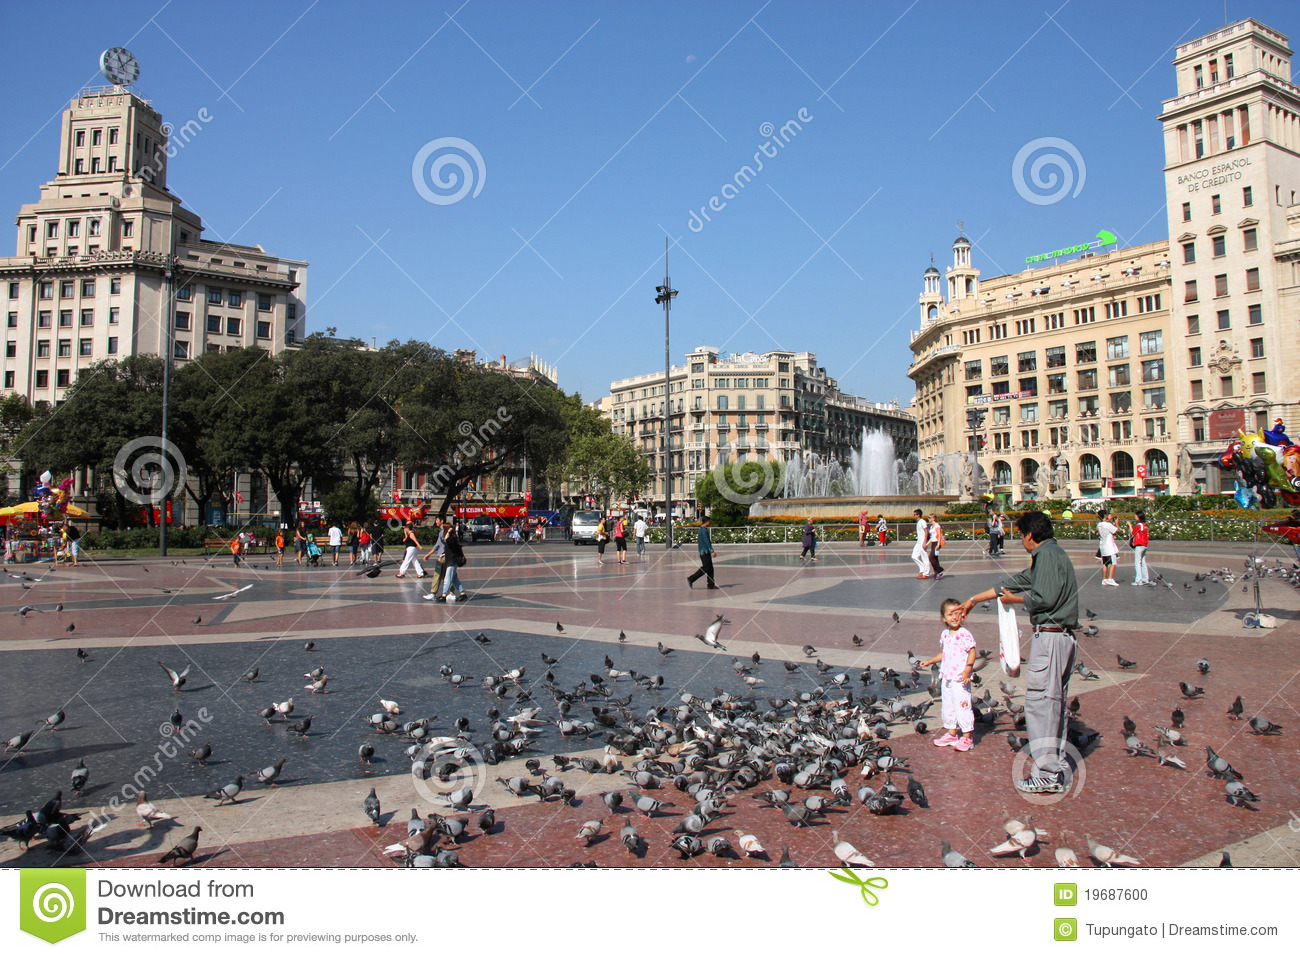 BARCELONA - SEPTEMBER 12: Feeding pigeons on September 12, 2009 at ...